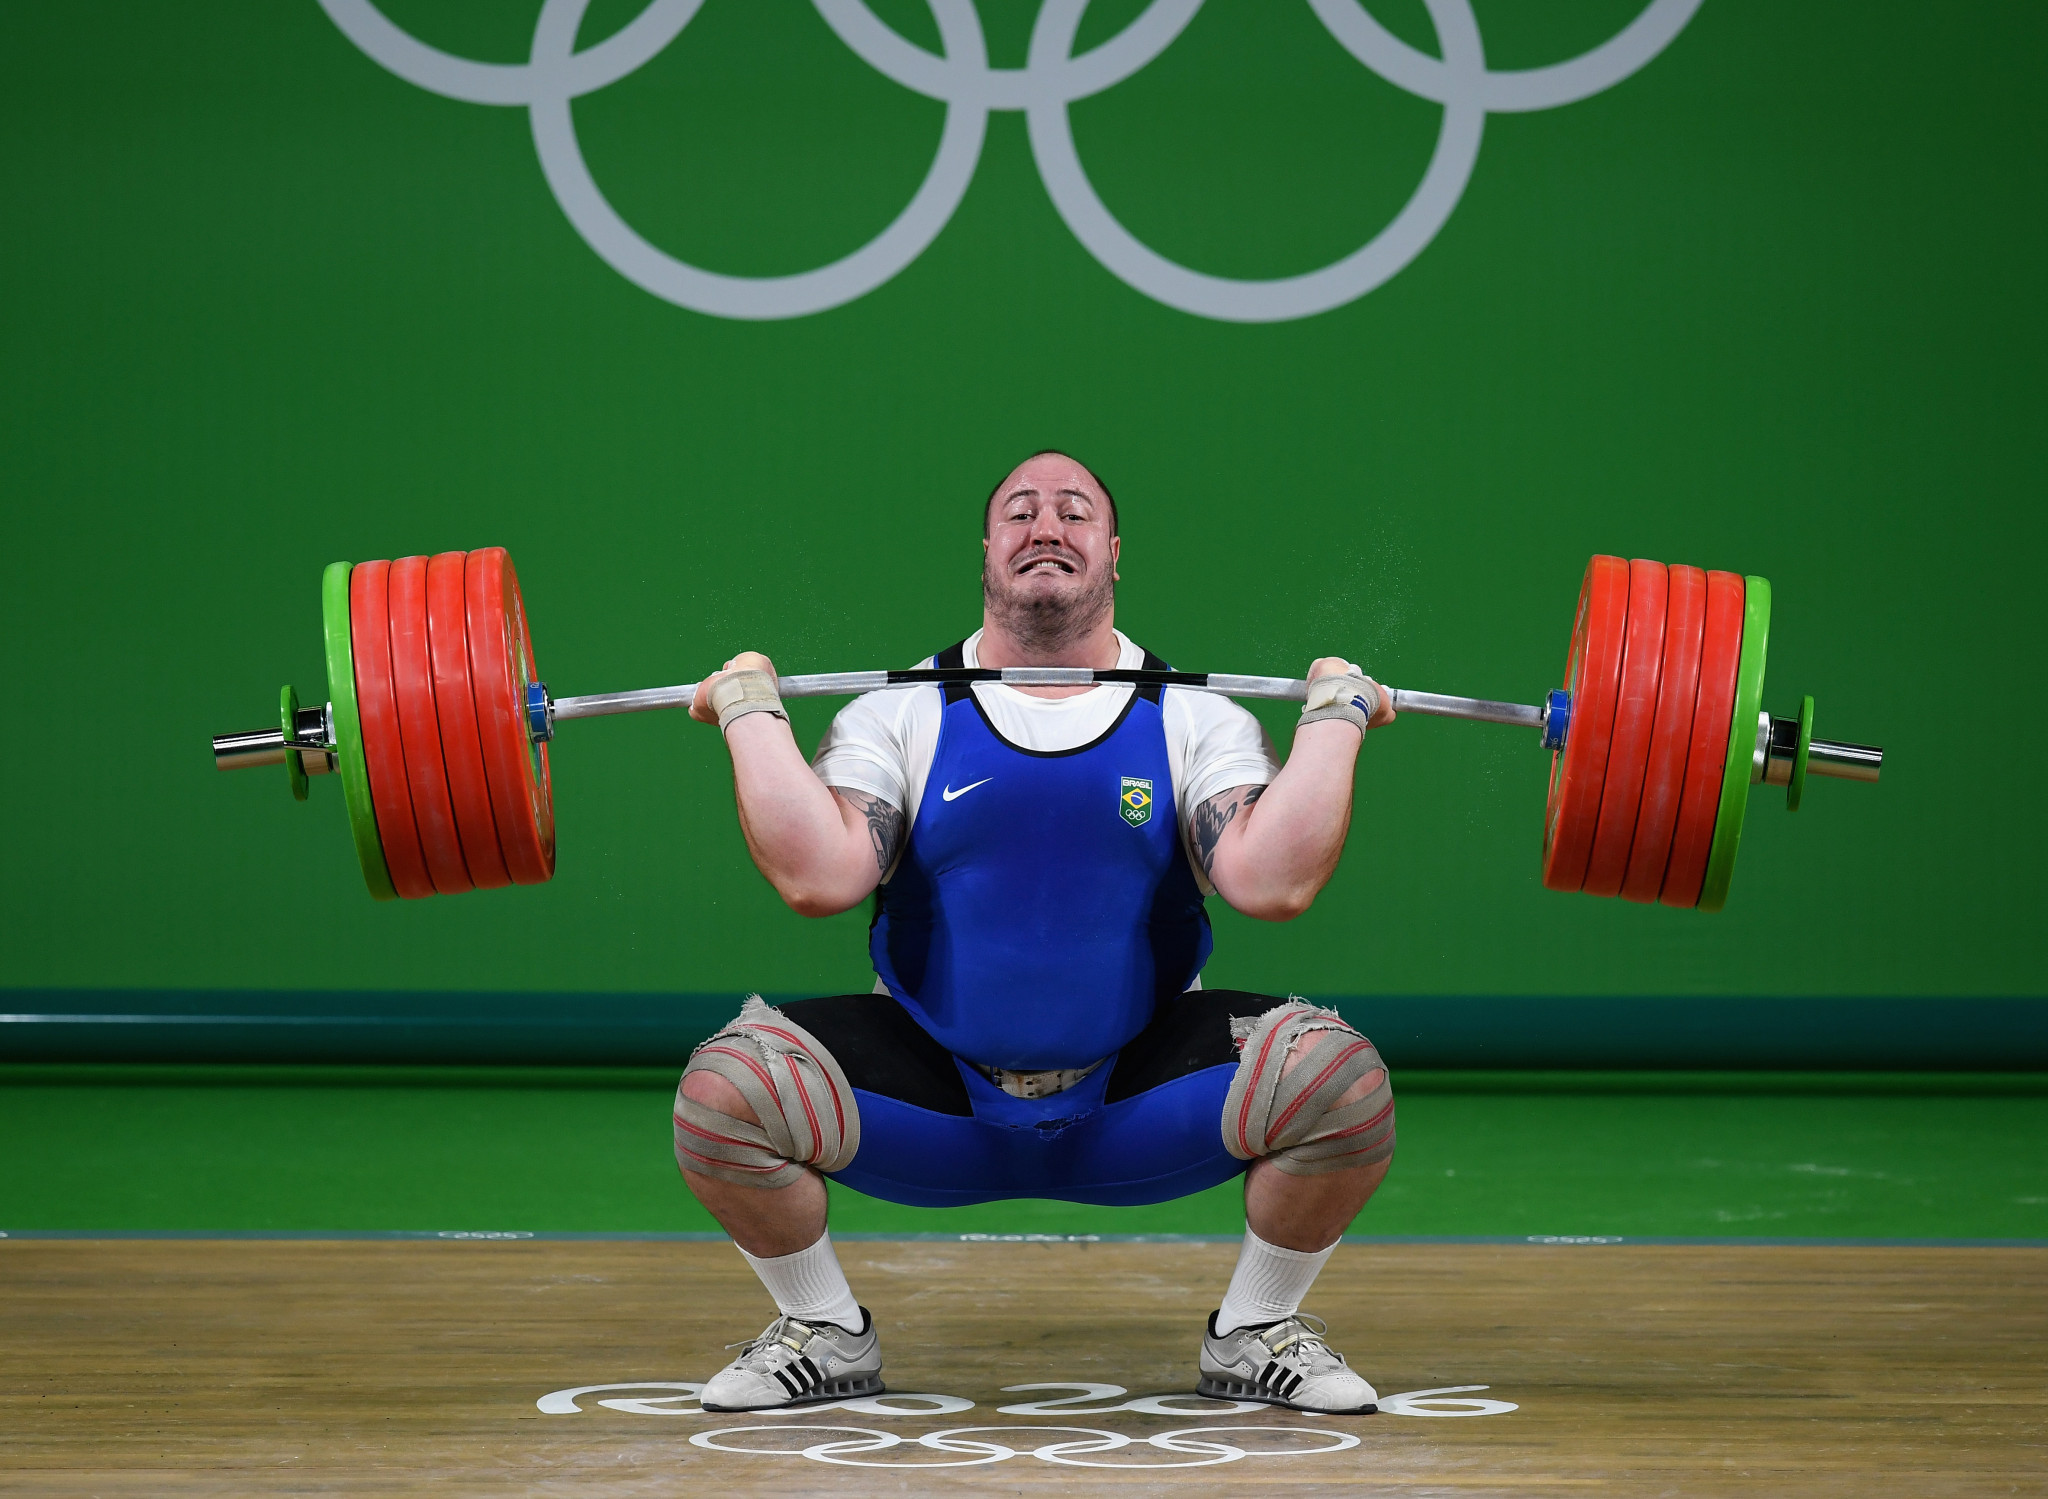 Brazilian fired up for landmark Olympic weightlifting medal as rivals hit by drugs crackdown